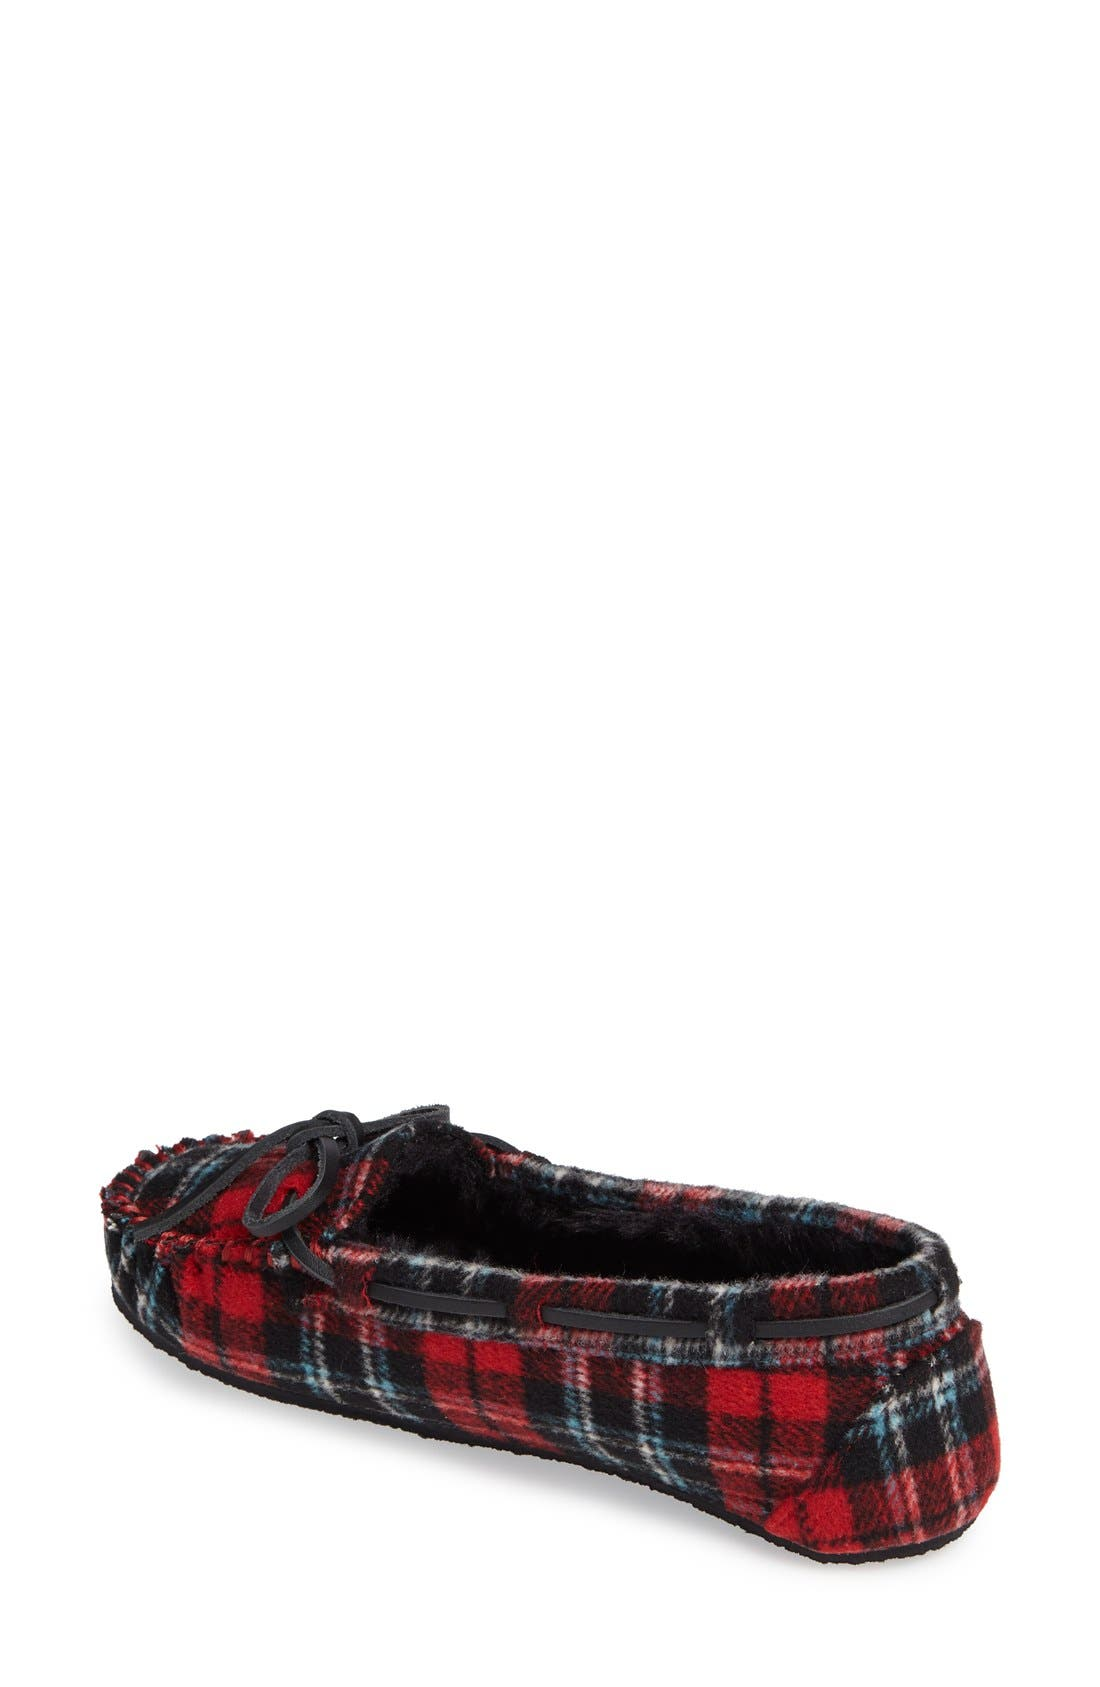 Cally Plaid Faux Fur Lined Slipper,                             Alternate thumbnail 2, color,                             Red